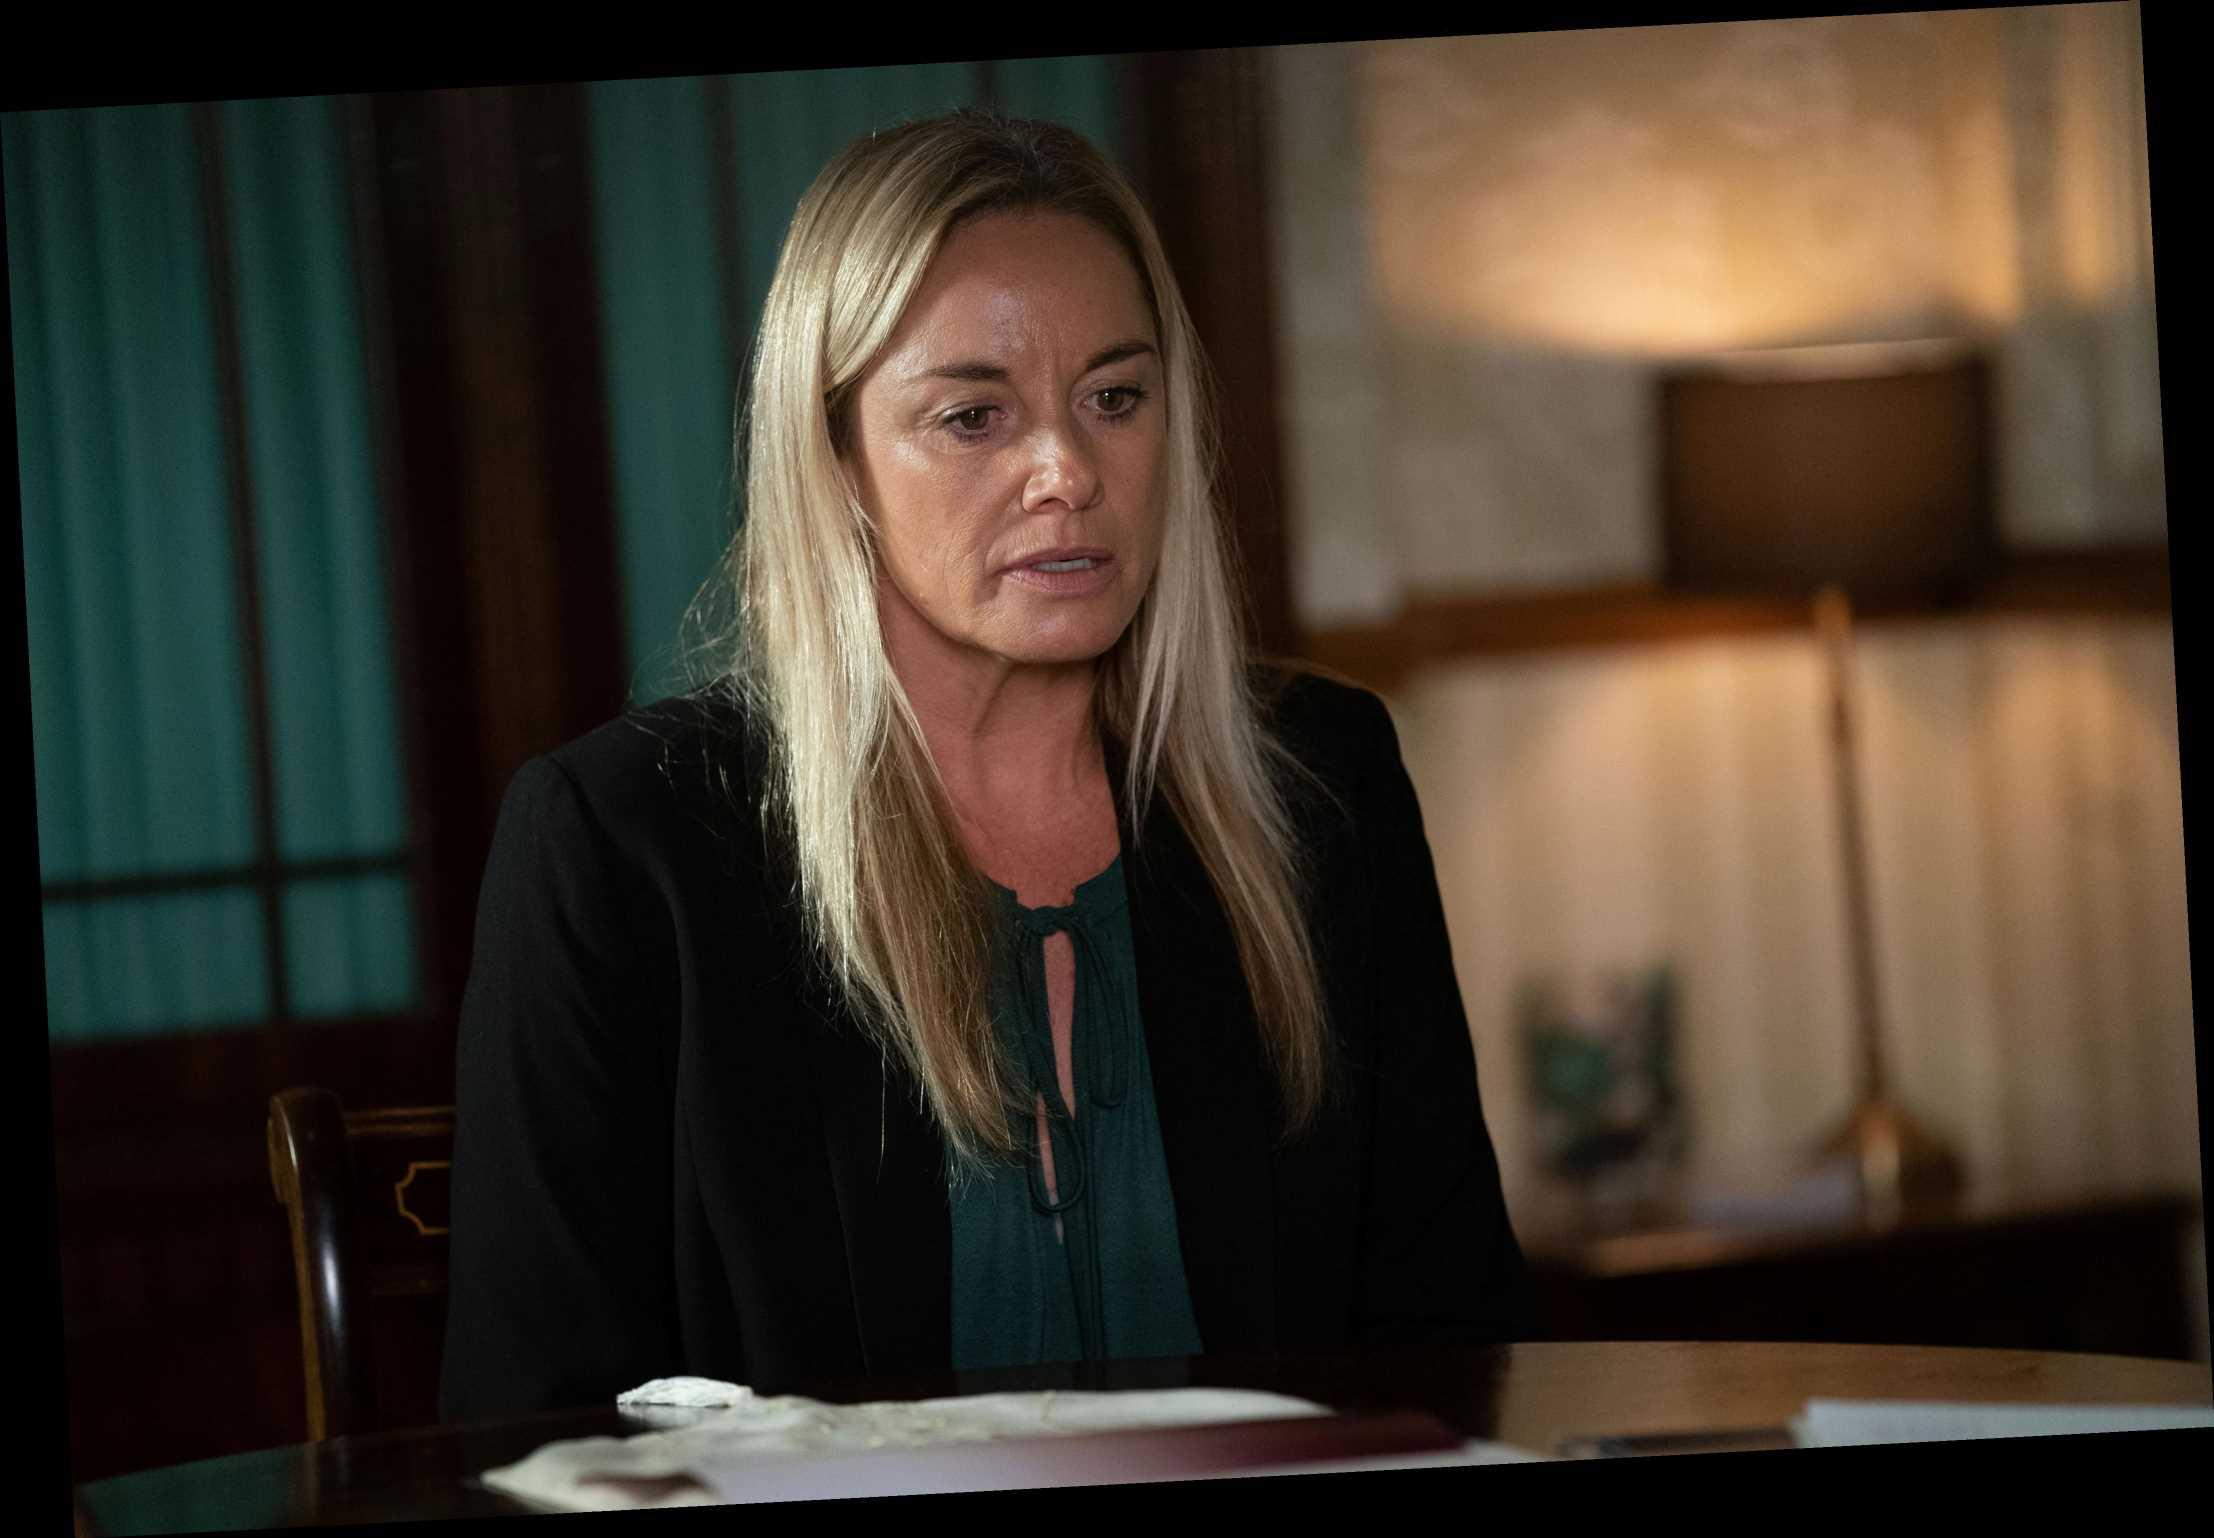 Former EastEnders star Tamzin Outhwaite admits it's 'difficult' to watch soap since departure